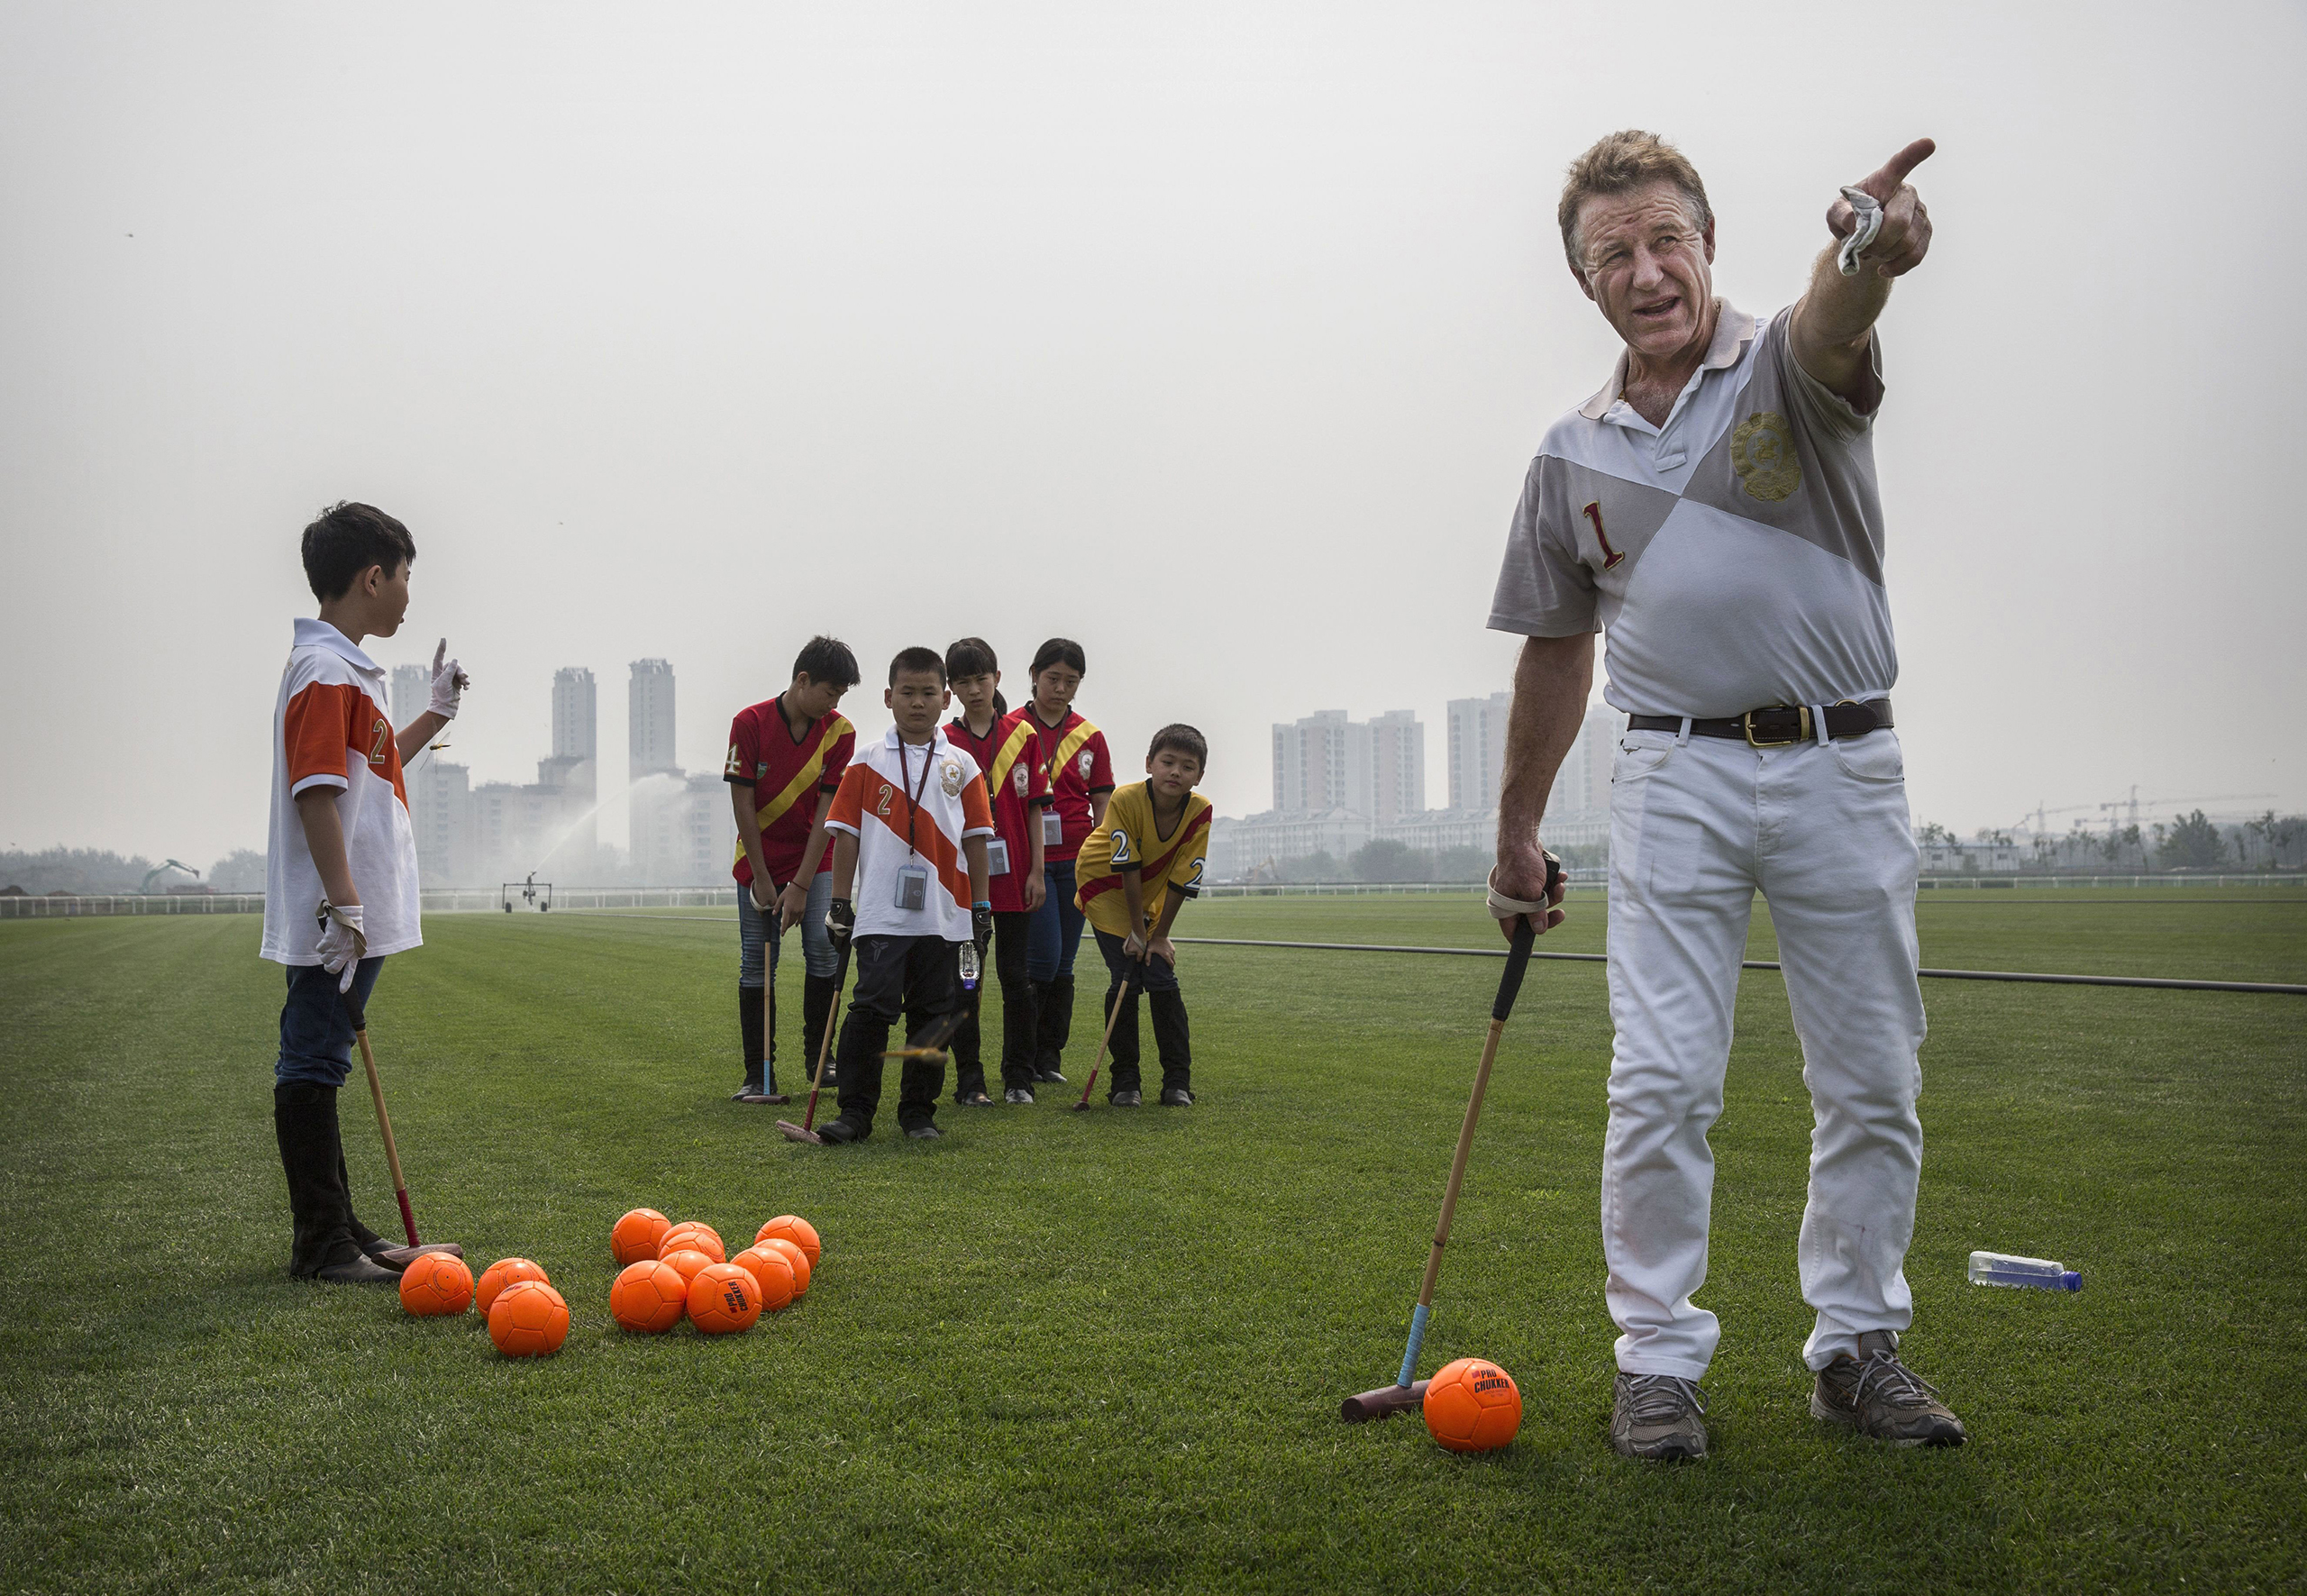 Derek Reid, director of Polo Operations, gestures as he instructs young Chinese players from the Junior Polo Program during stick and ball training at a summer camp held at the Tianjin Goldin Metropolitan Polo Club in Tianjin, China, on July 17, 2016.